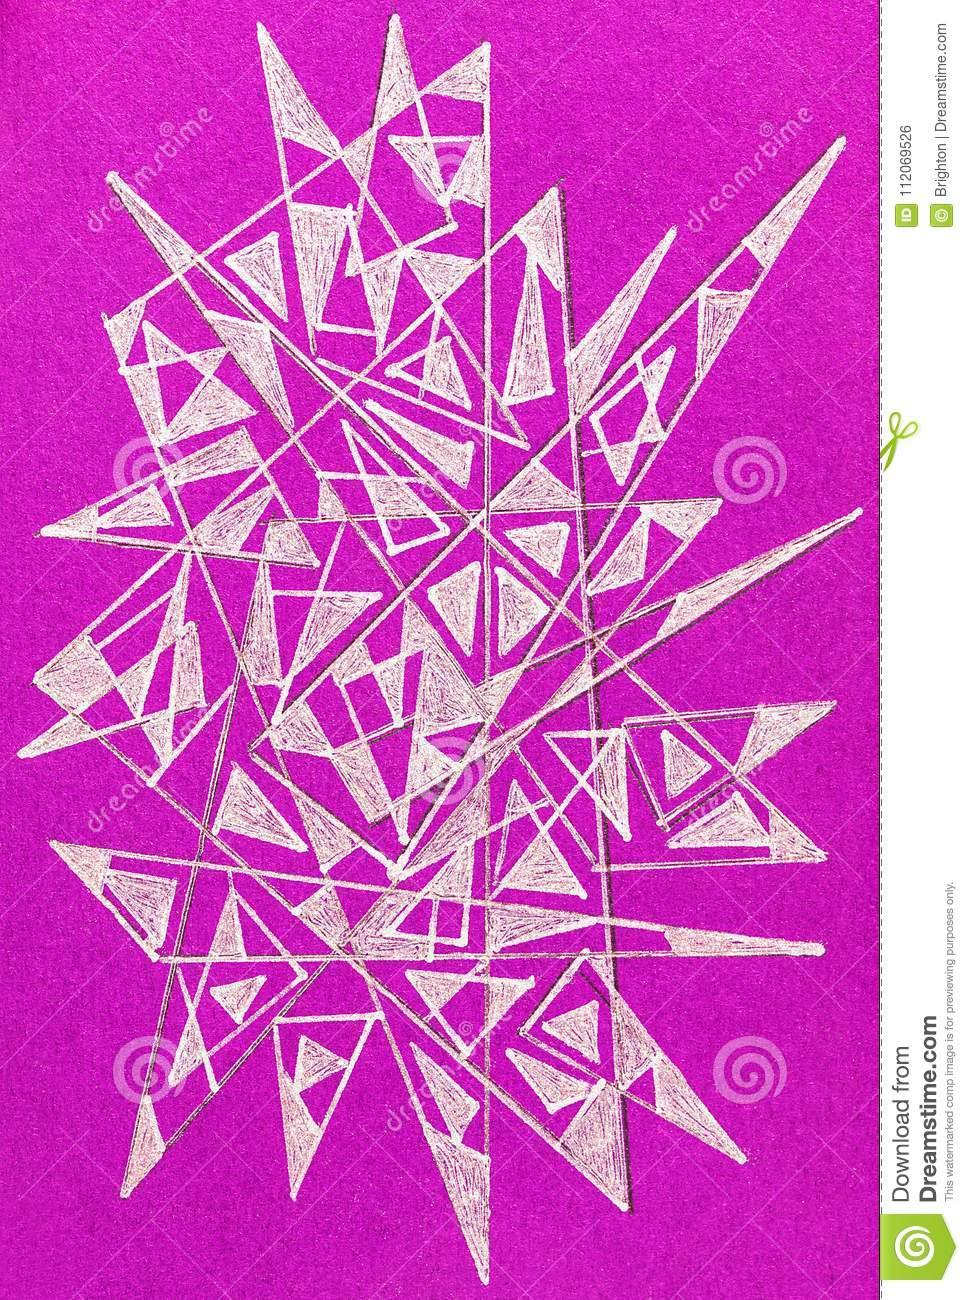 Gel Pen Drawing With Spiky Abstract Shapes Stock Photo